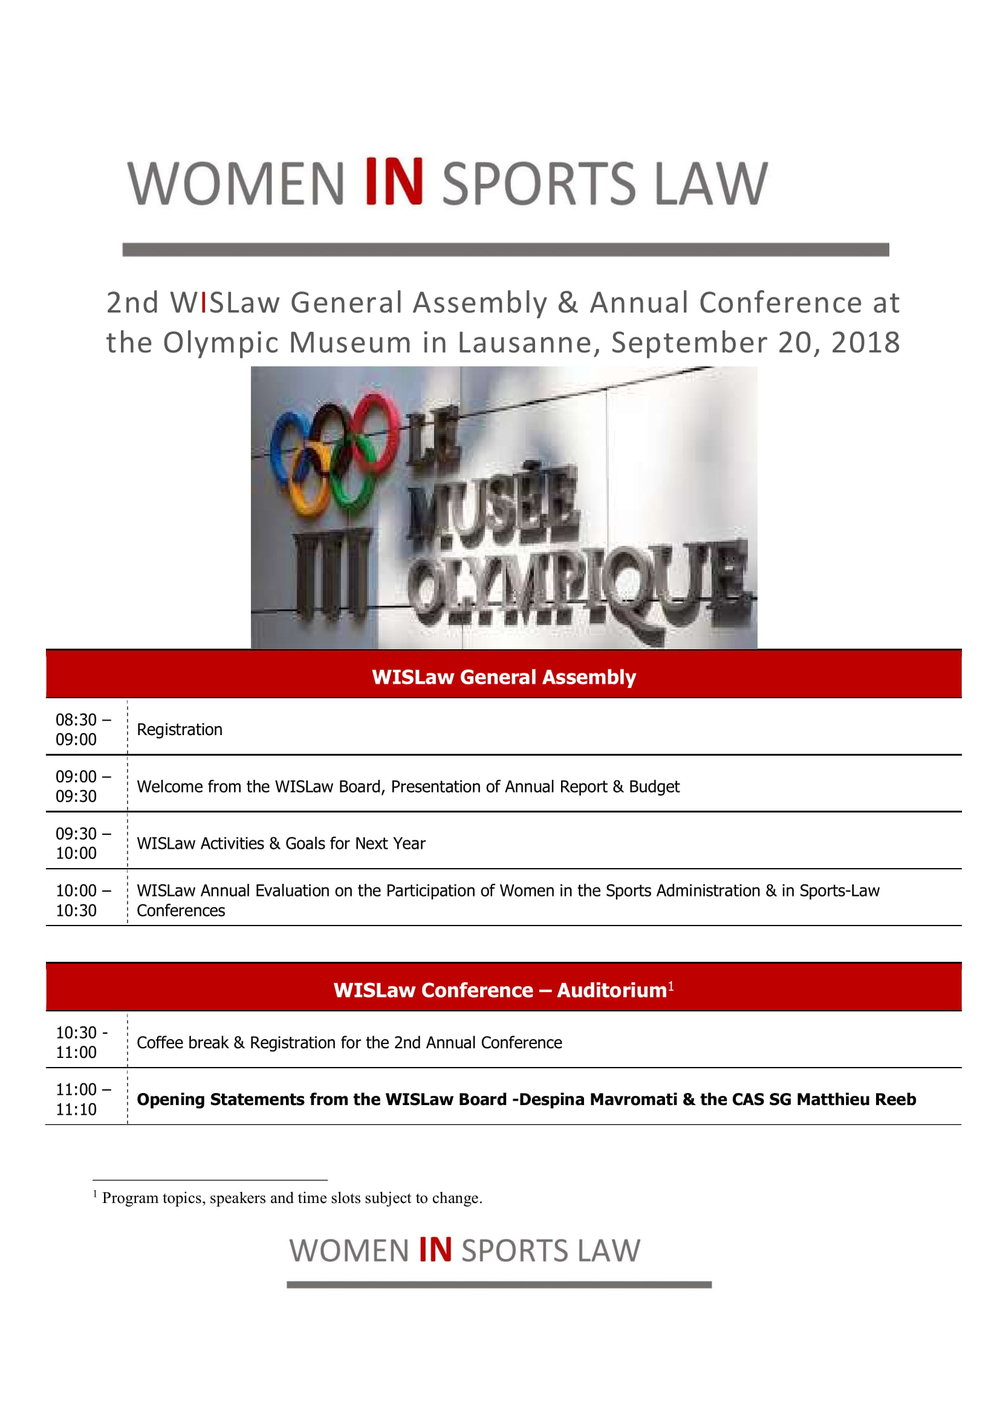 2nd WISLaw Conference 2 pages FINAL September 2018-1.jpg